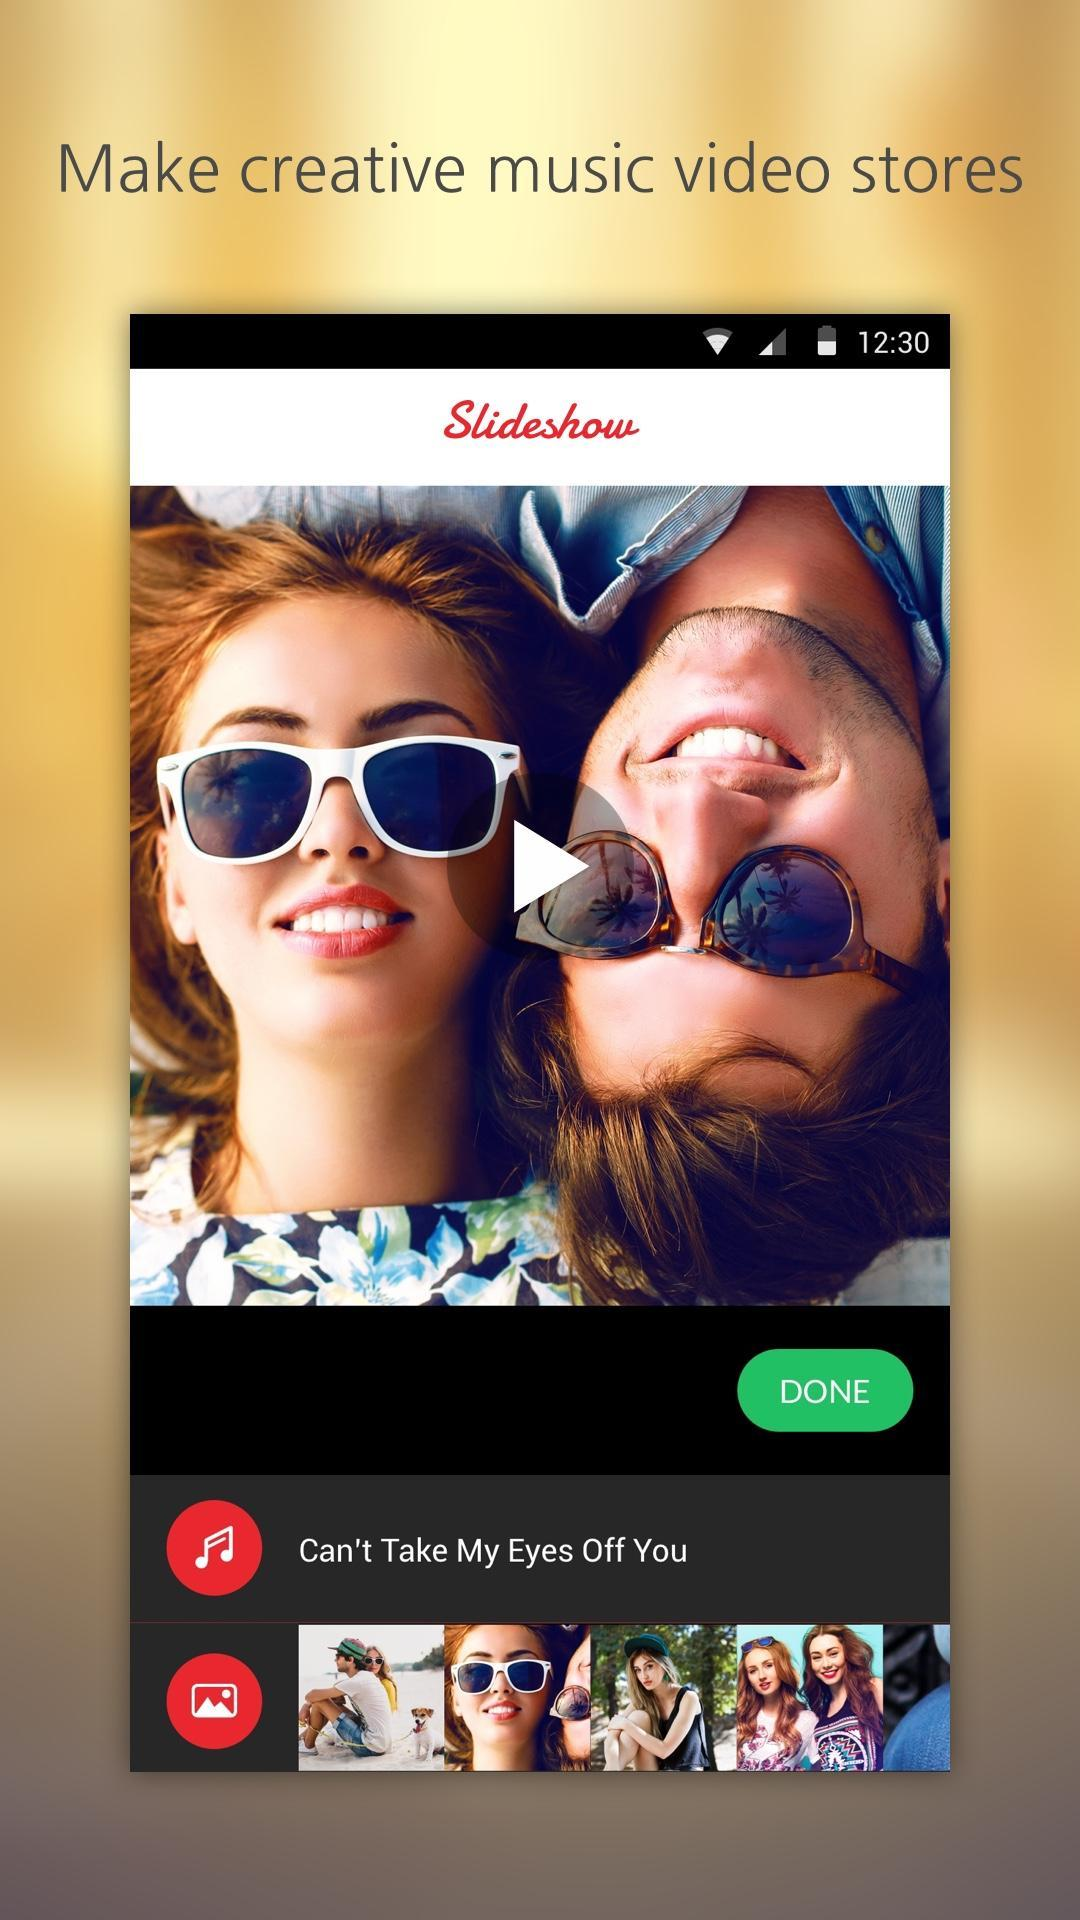 Music Video Maker: Slideshow for Android - APK Download